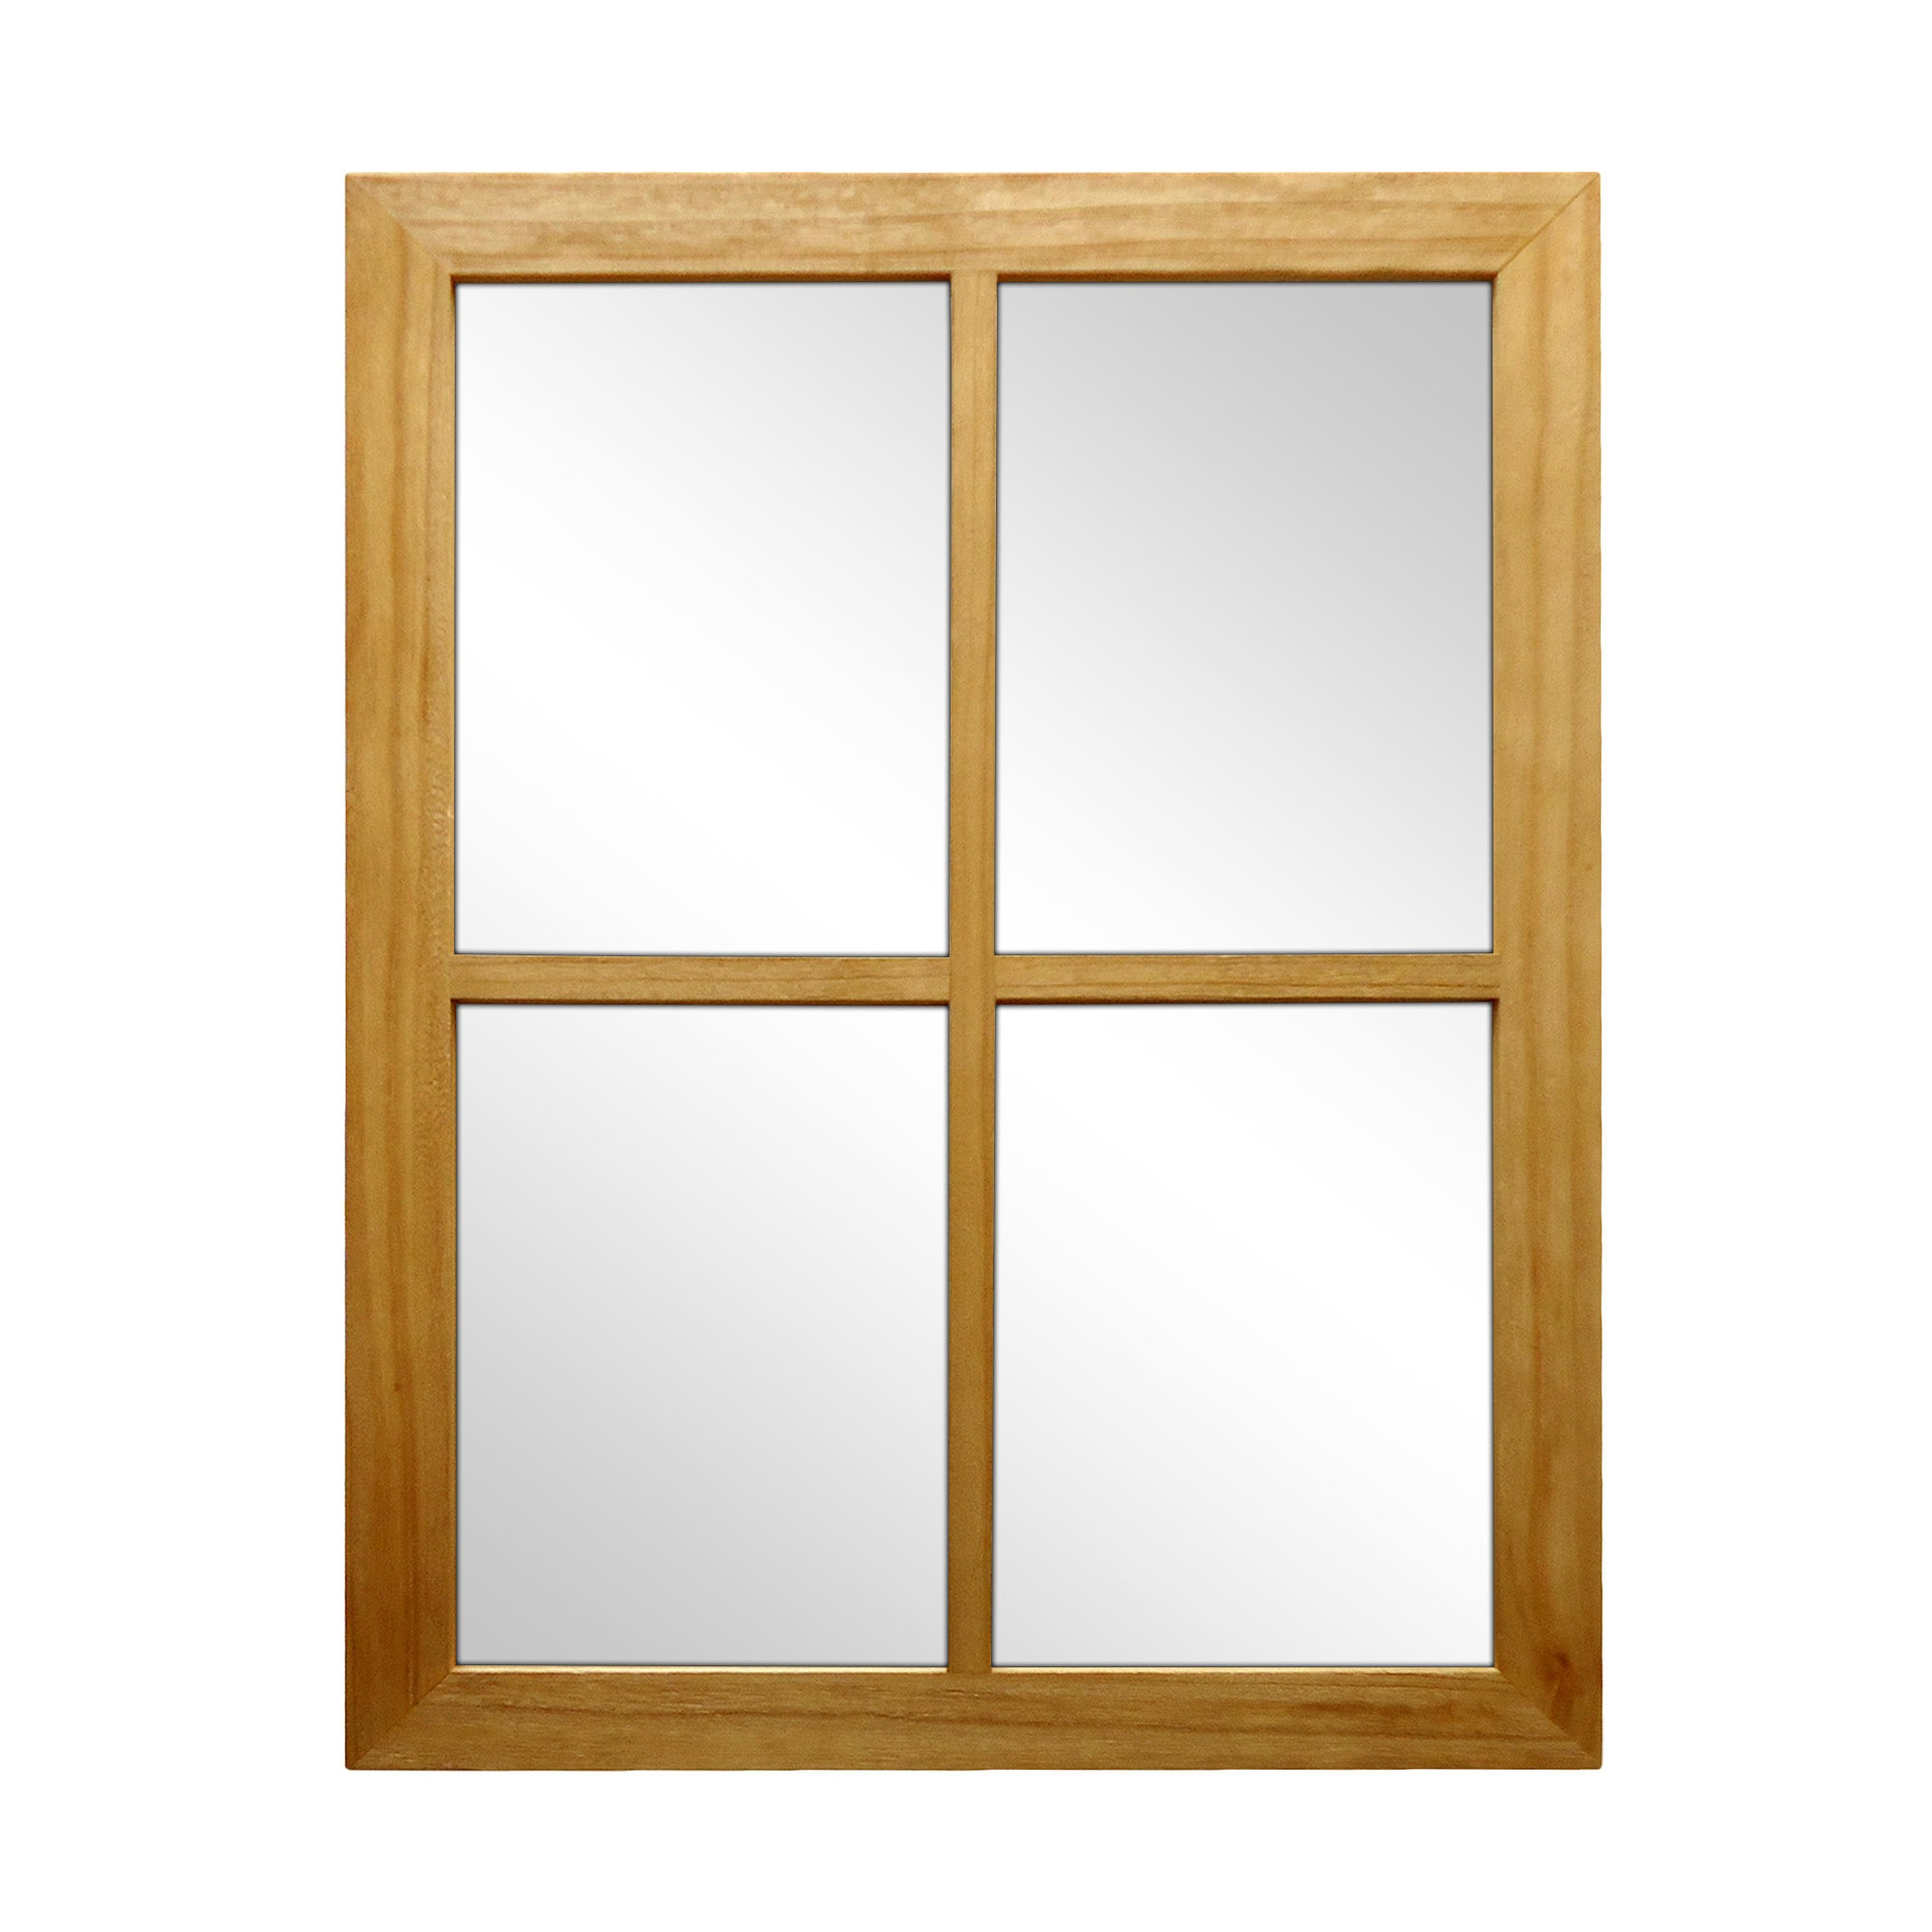 Natural Wooden Window Mirror